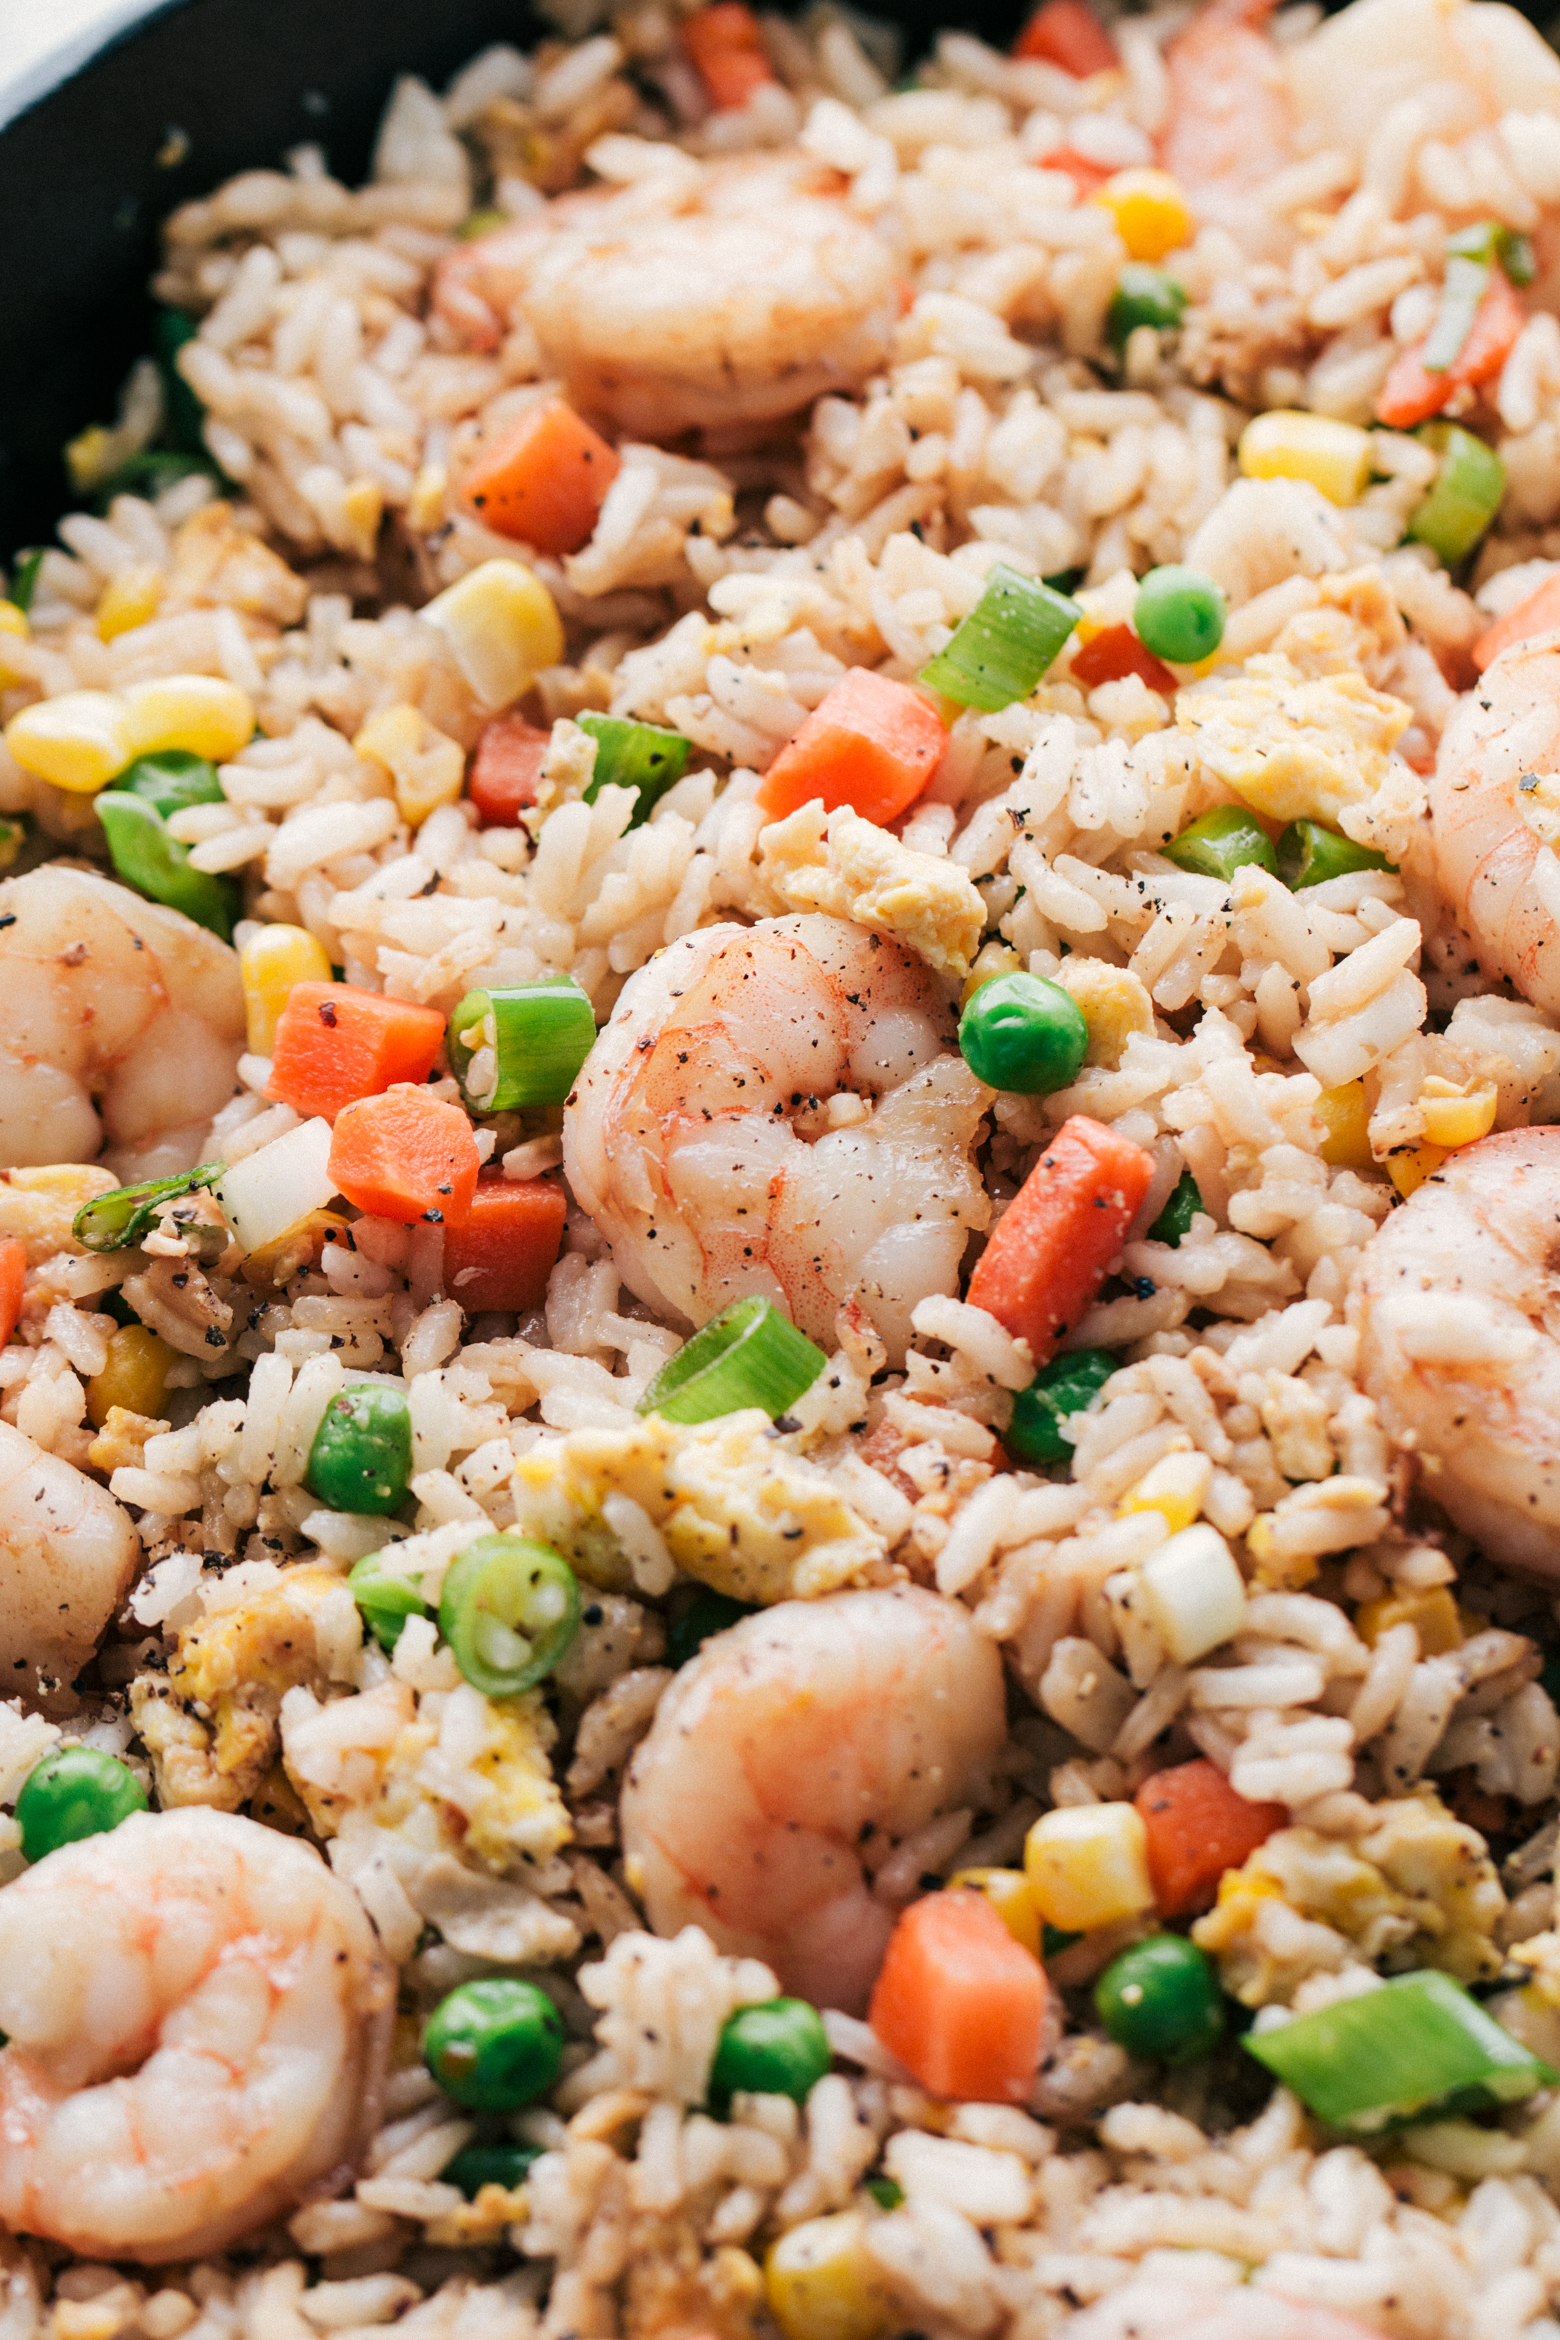 How Can I Make Fried Rice At Home